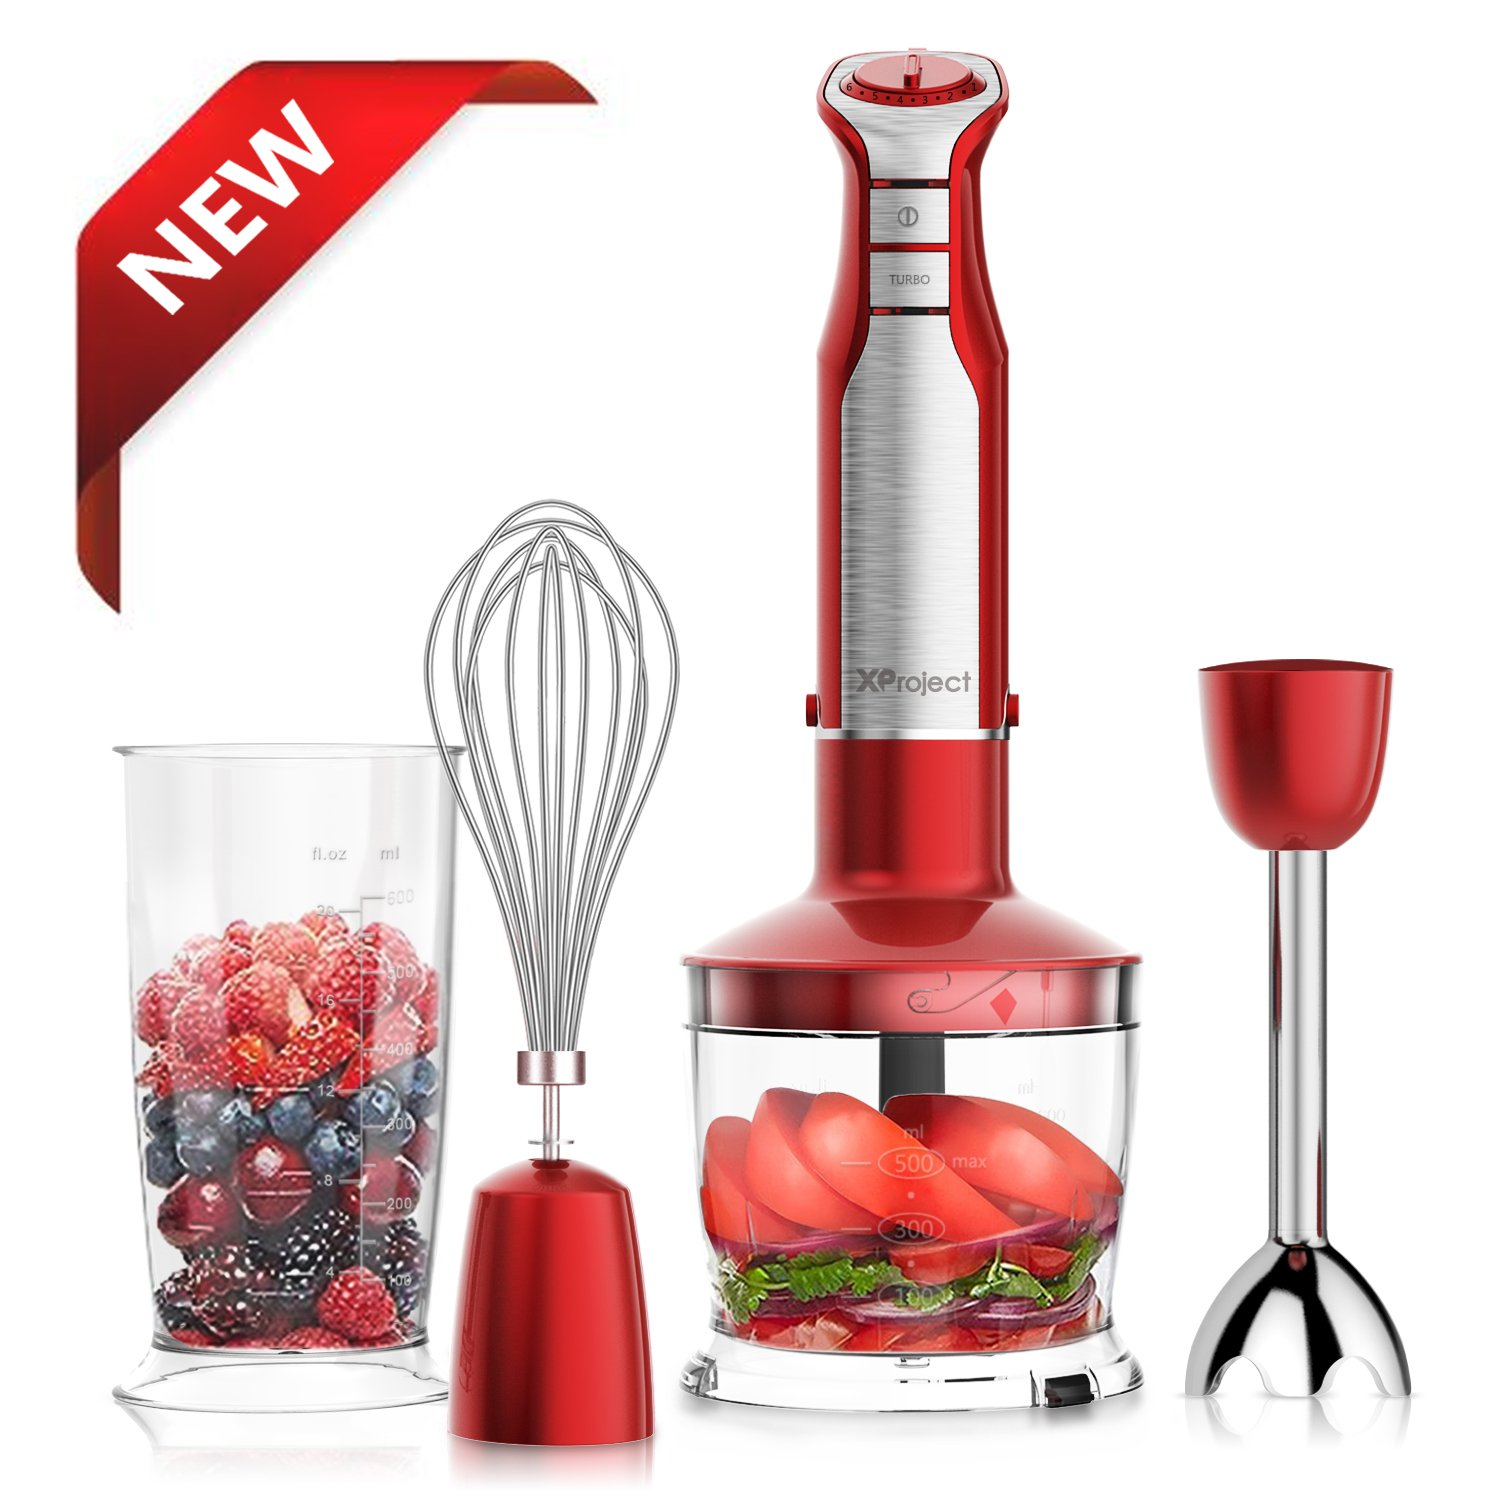 XProject HB-2042 I900075 800W 4-in-1 6 Speed,Powerful Immersion Hand Blender for Smoothies Baby Food Yogurt Sauces Soups, 232513cm, Red